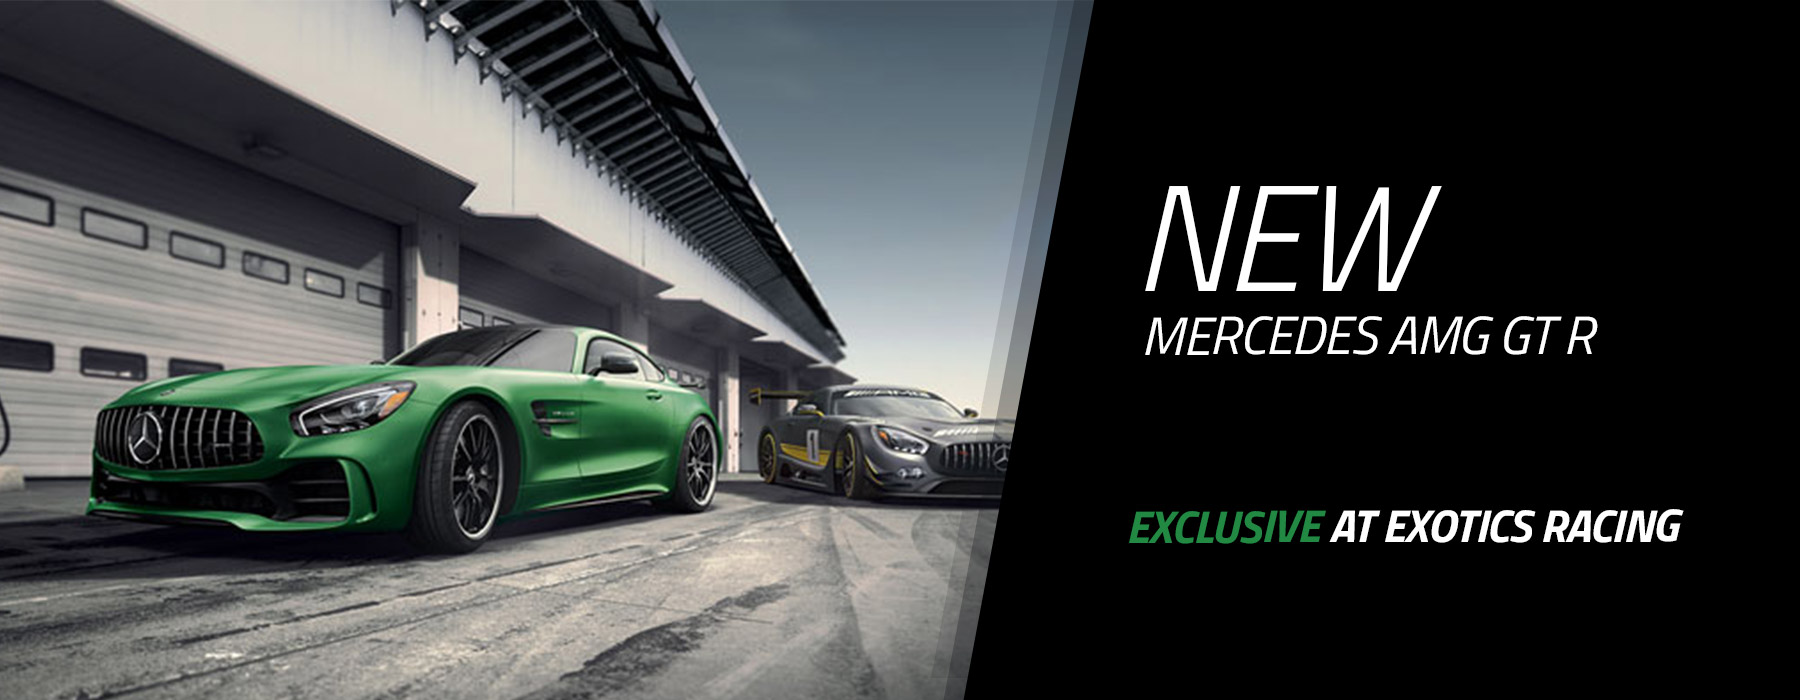 Mercedes Amg Drive A Mercedes Amg Gt R On A Racetrack At Exotics Racing